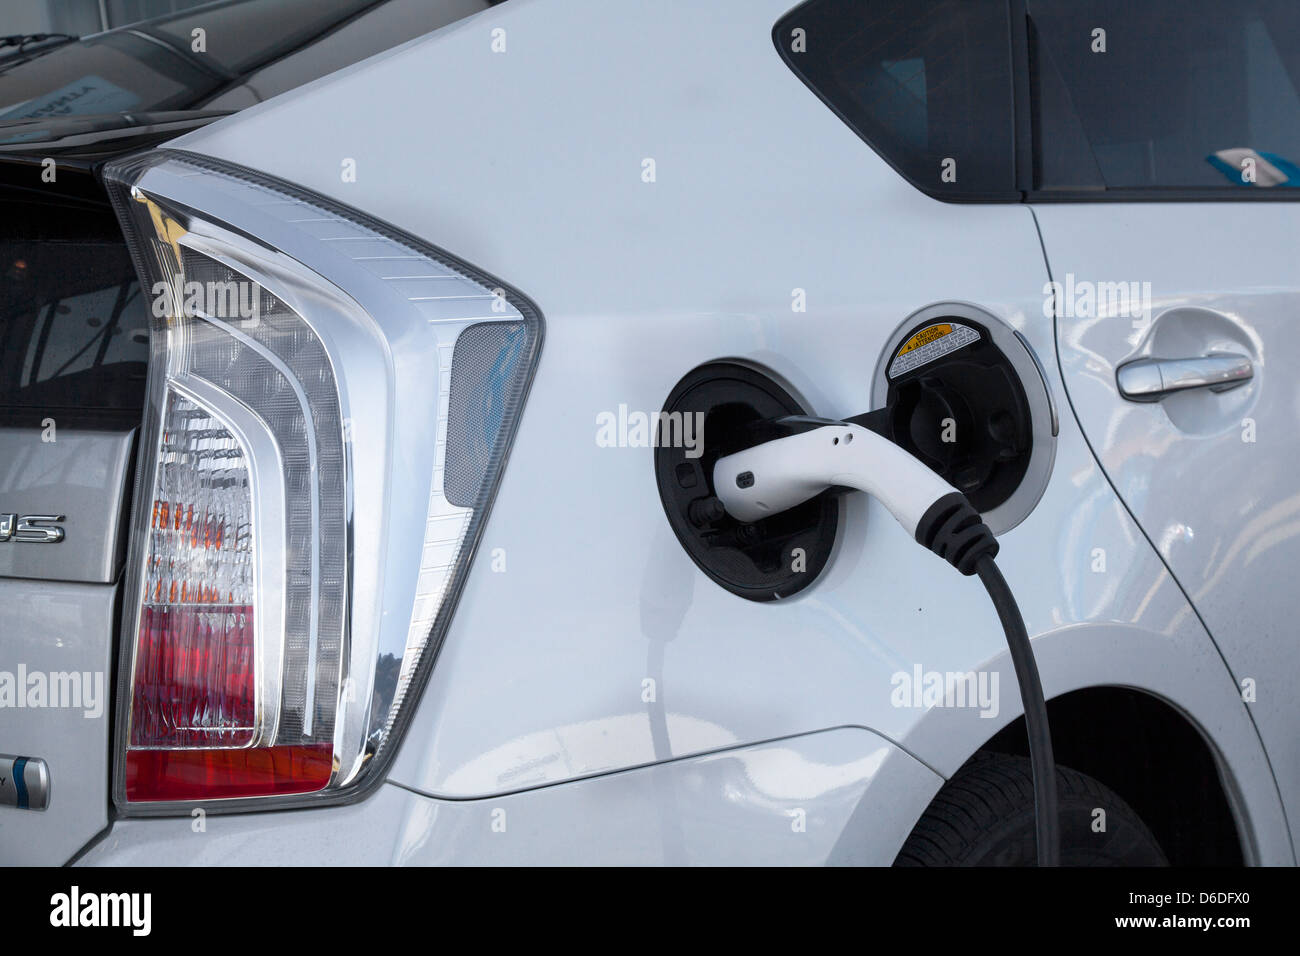 Toyota Prius PHEV Recharging _White Toyota Prius Car being charged at Preston Showrooms, Lancashire, UK - Stock Image